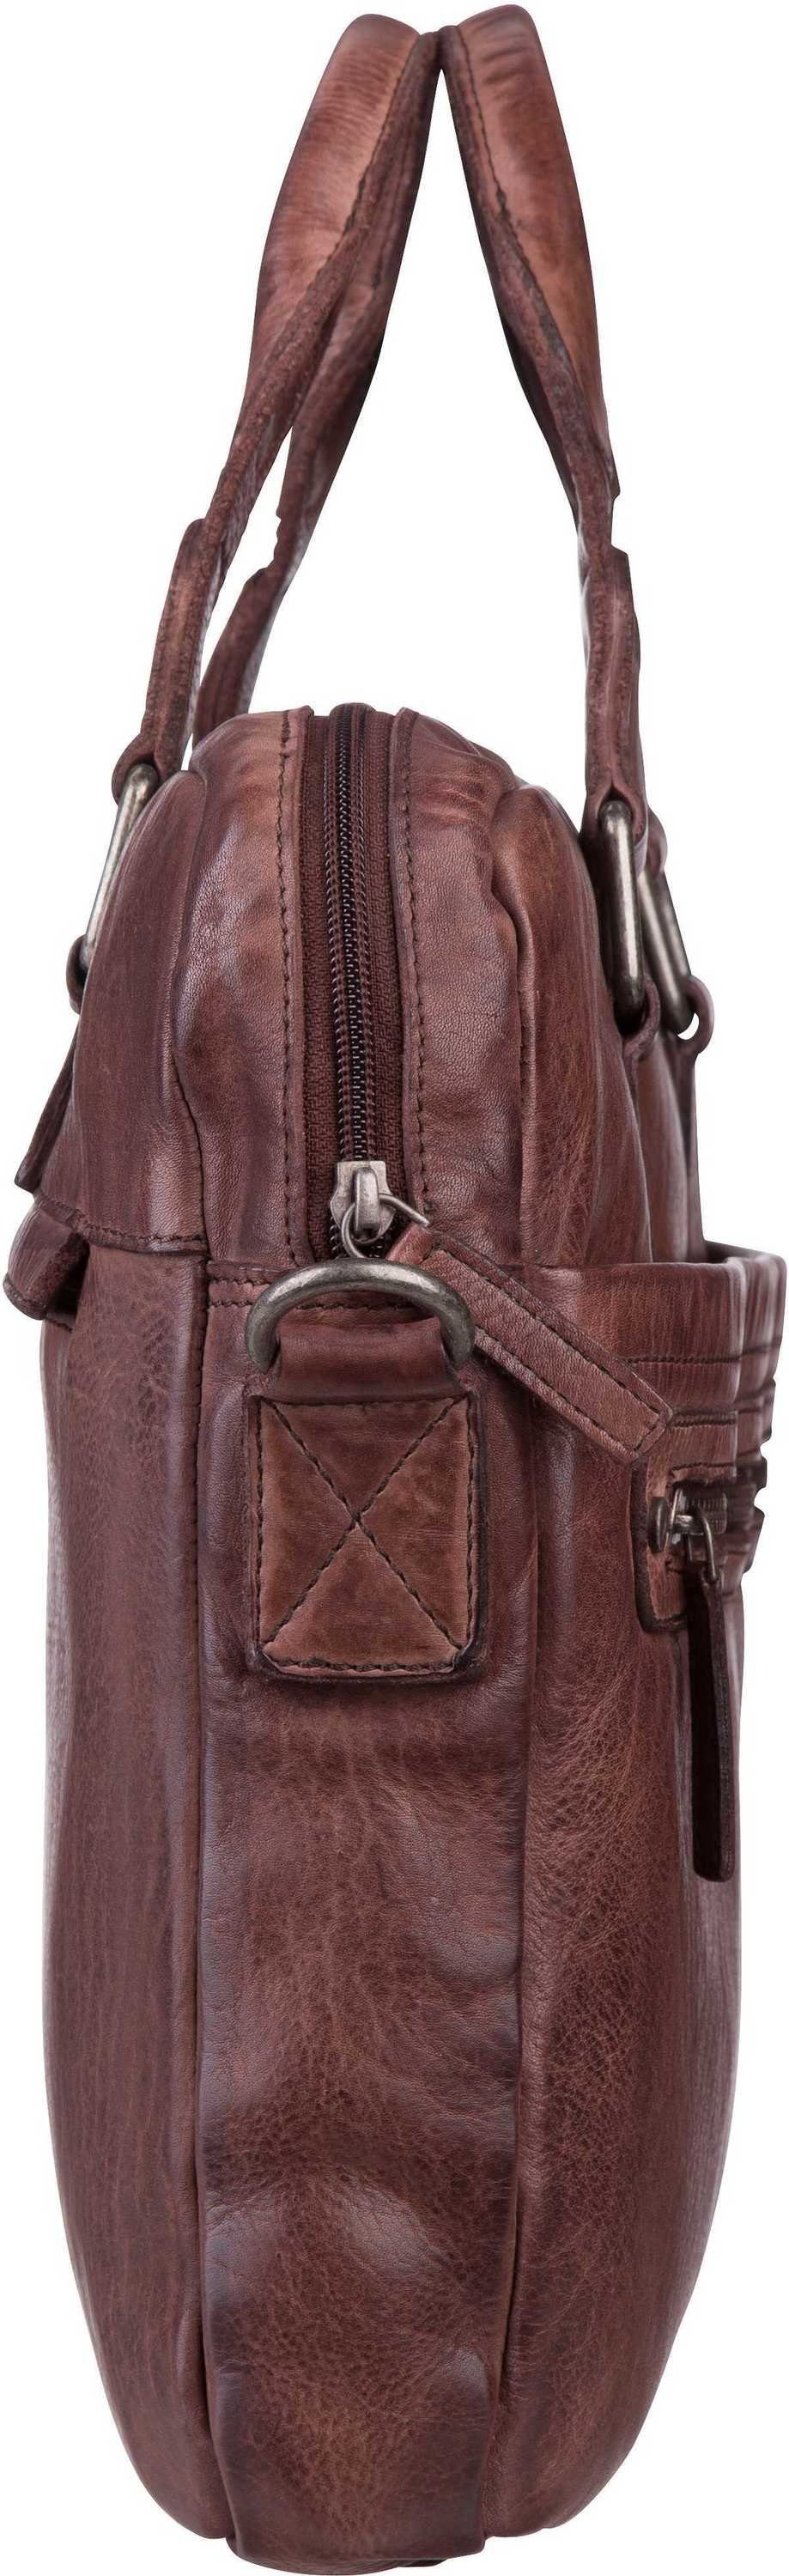 Officebag« Aktentasche Washed Online Kaufen 2908 Greenburry »gbvt 3FKTJu1lc